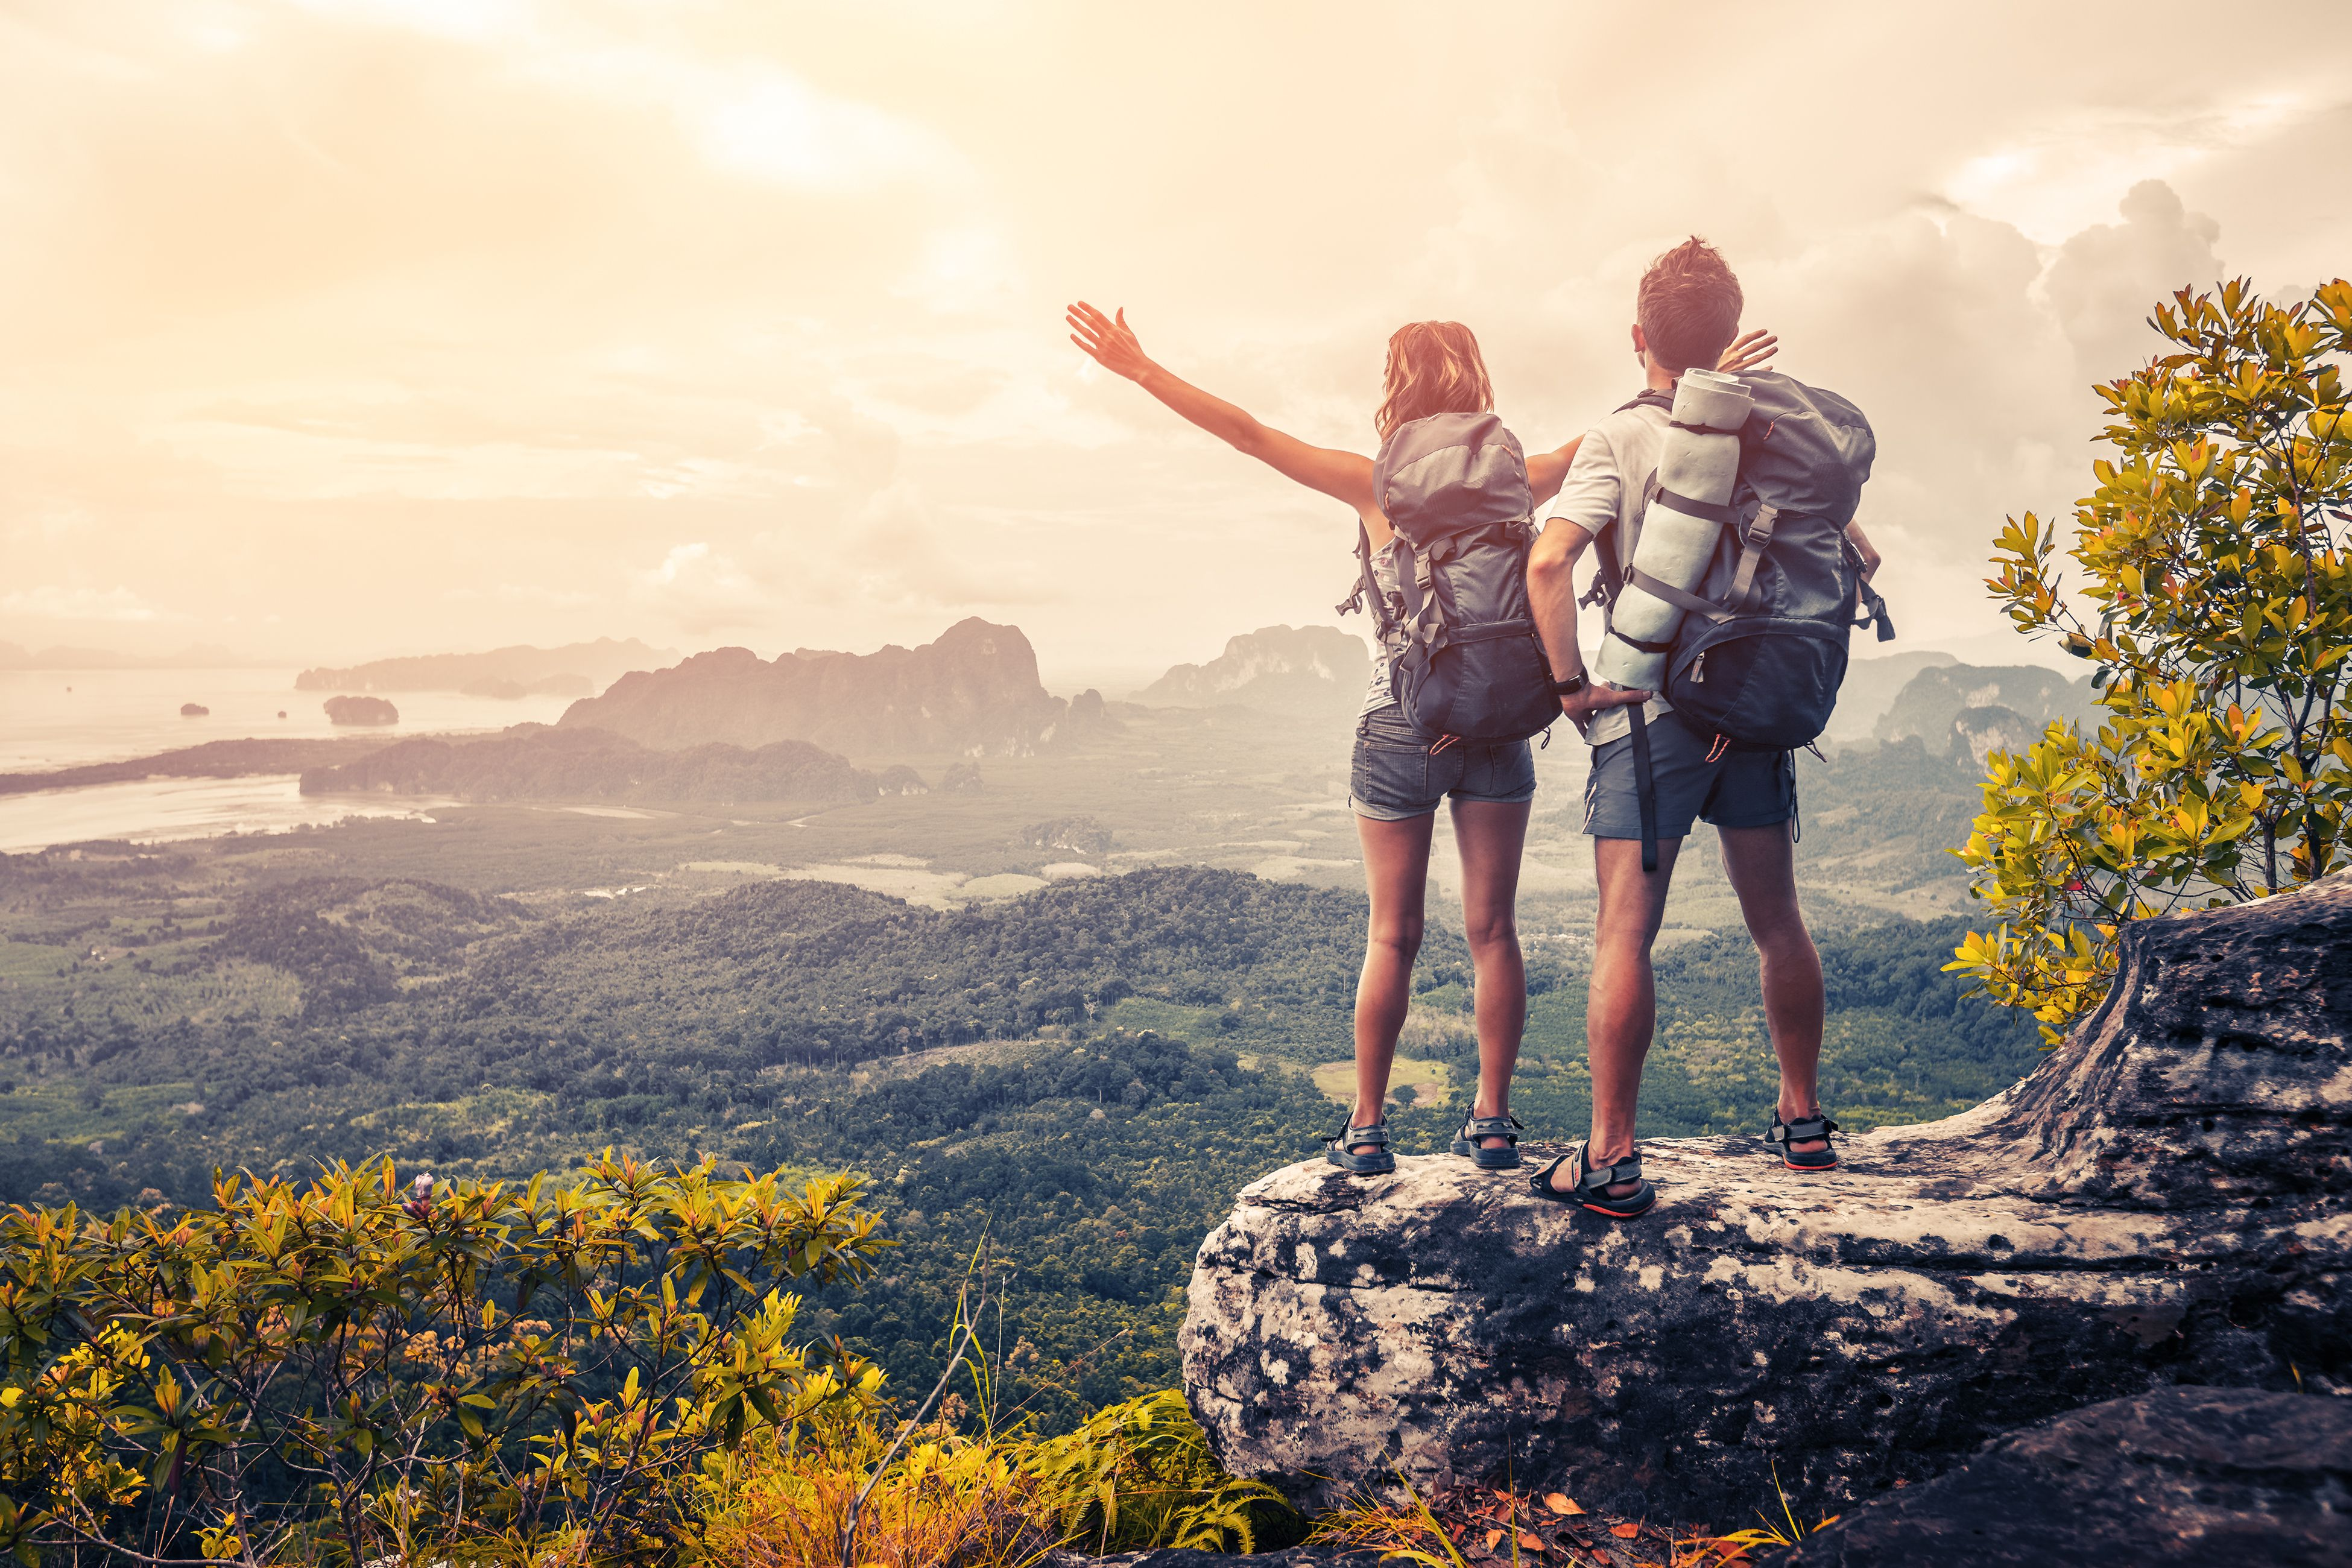 A man and a woman outdoors.   Source: Shutterstock